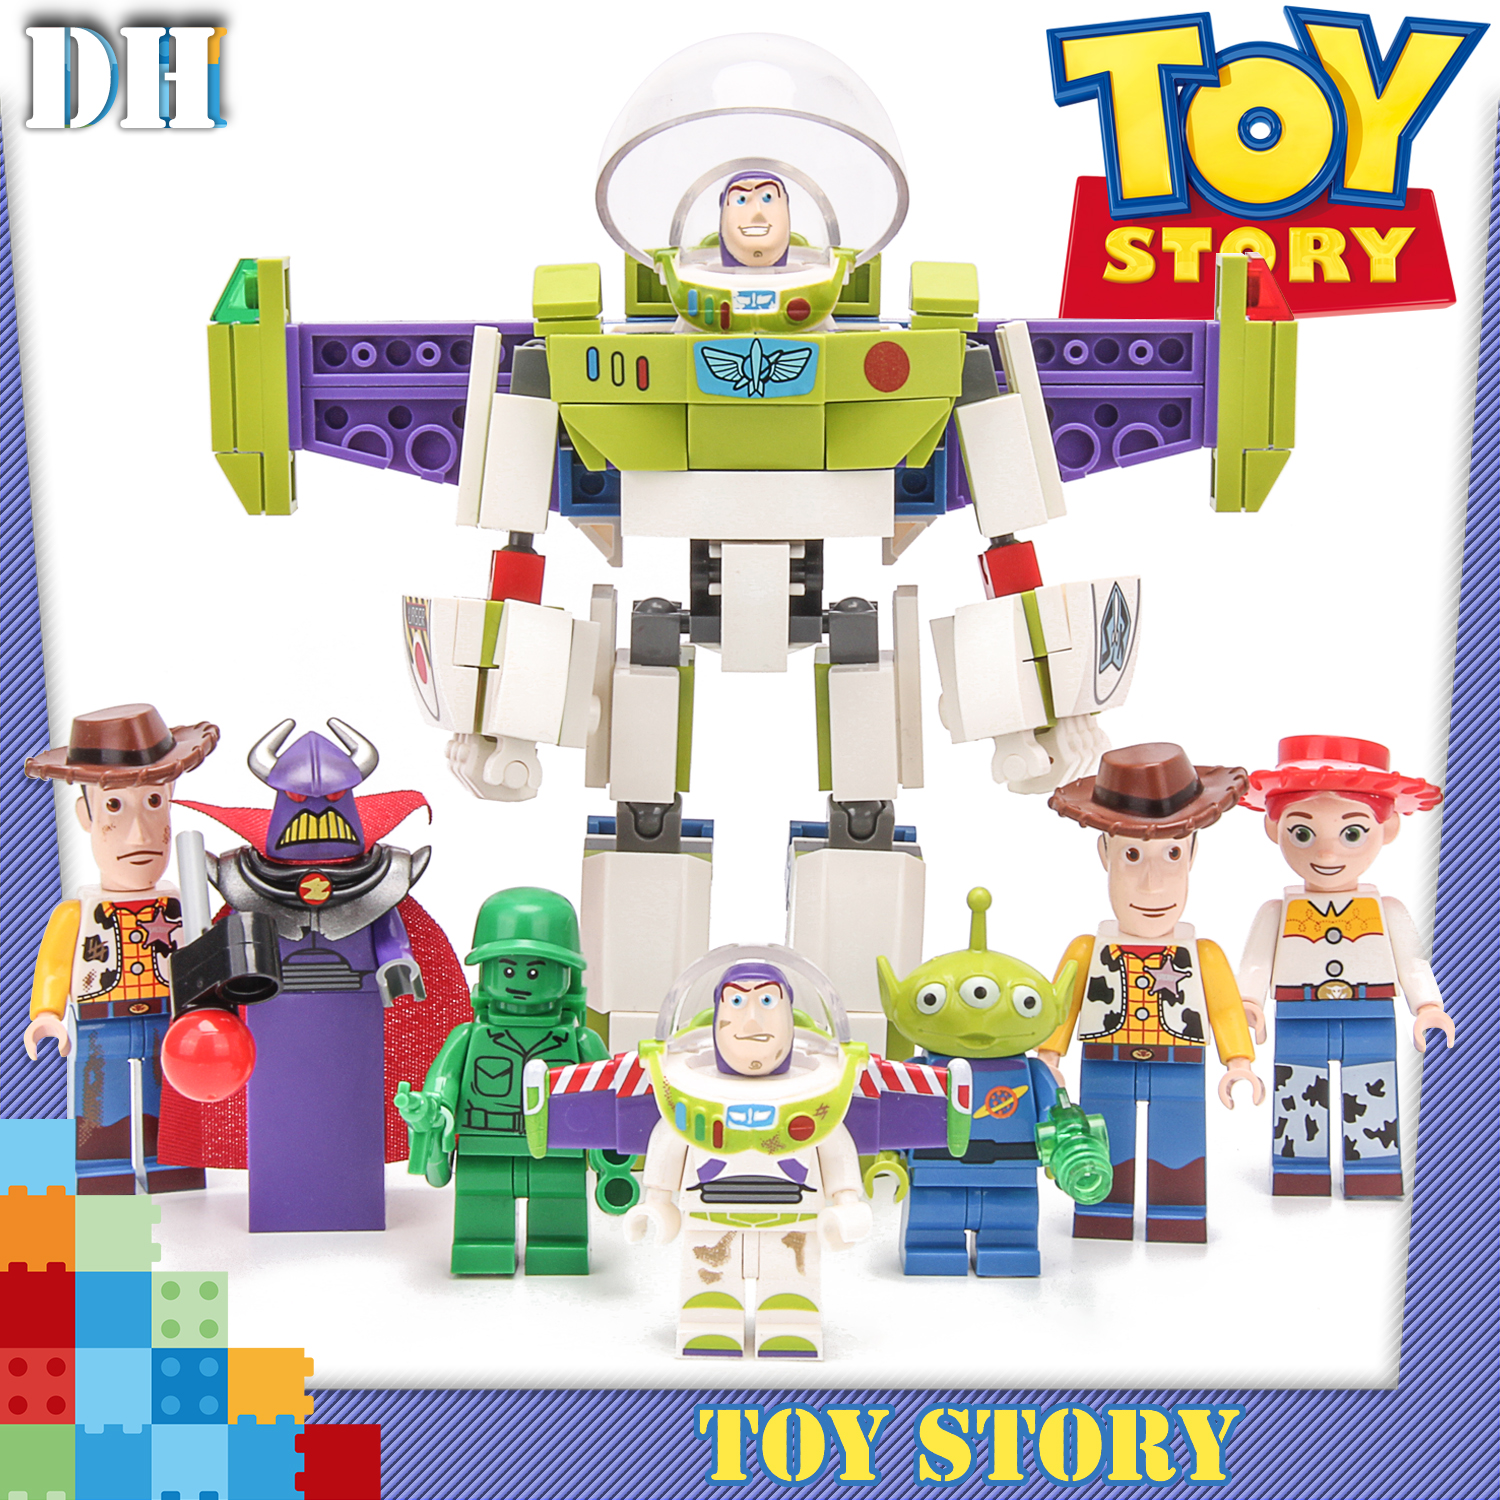 8 in1 Toy Story 4 Figures Gremlins Gizmo Woody Buzz Lightyear Jessie Andy Super Mario Building Blocks Friend toys image